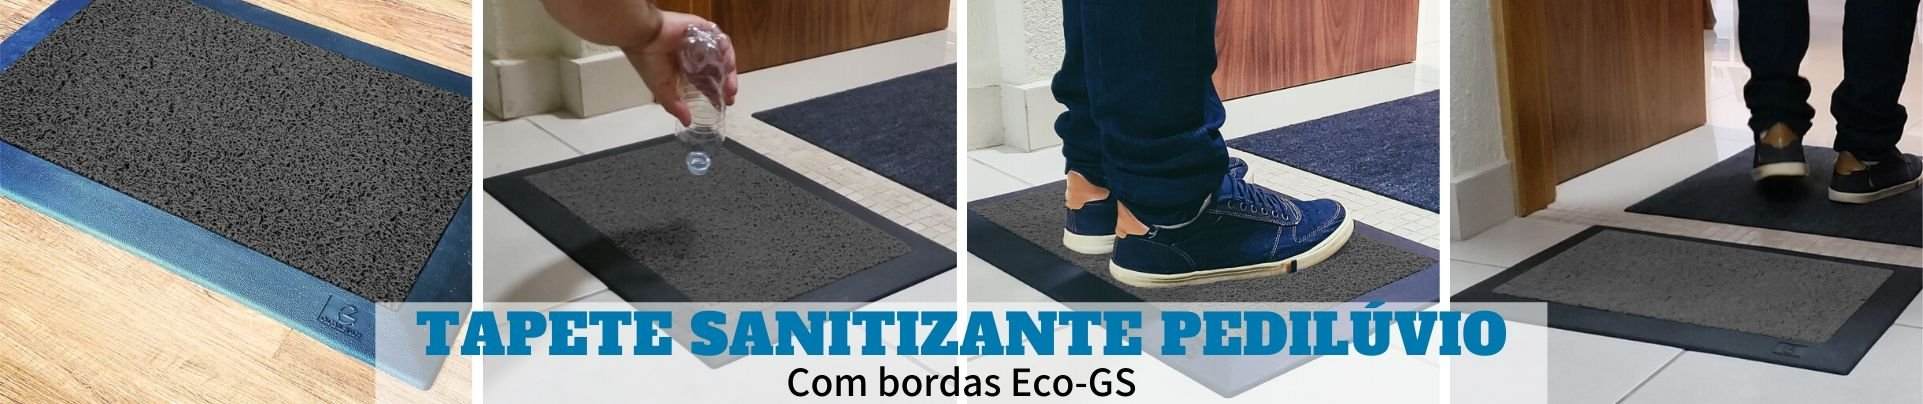 Pedilúvio com borda Eco-GS